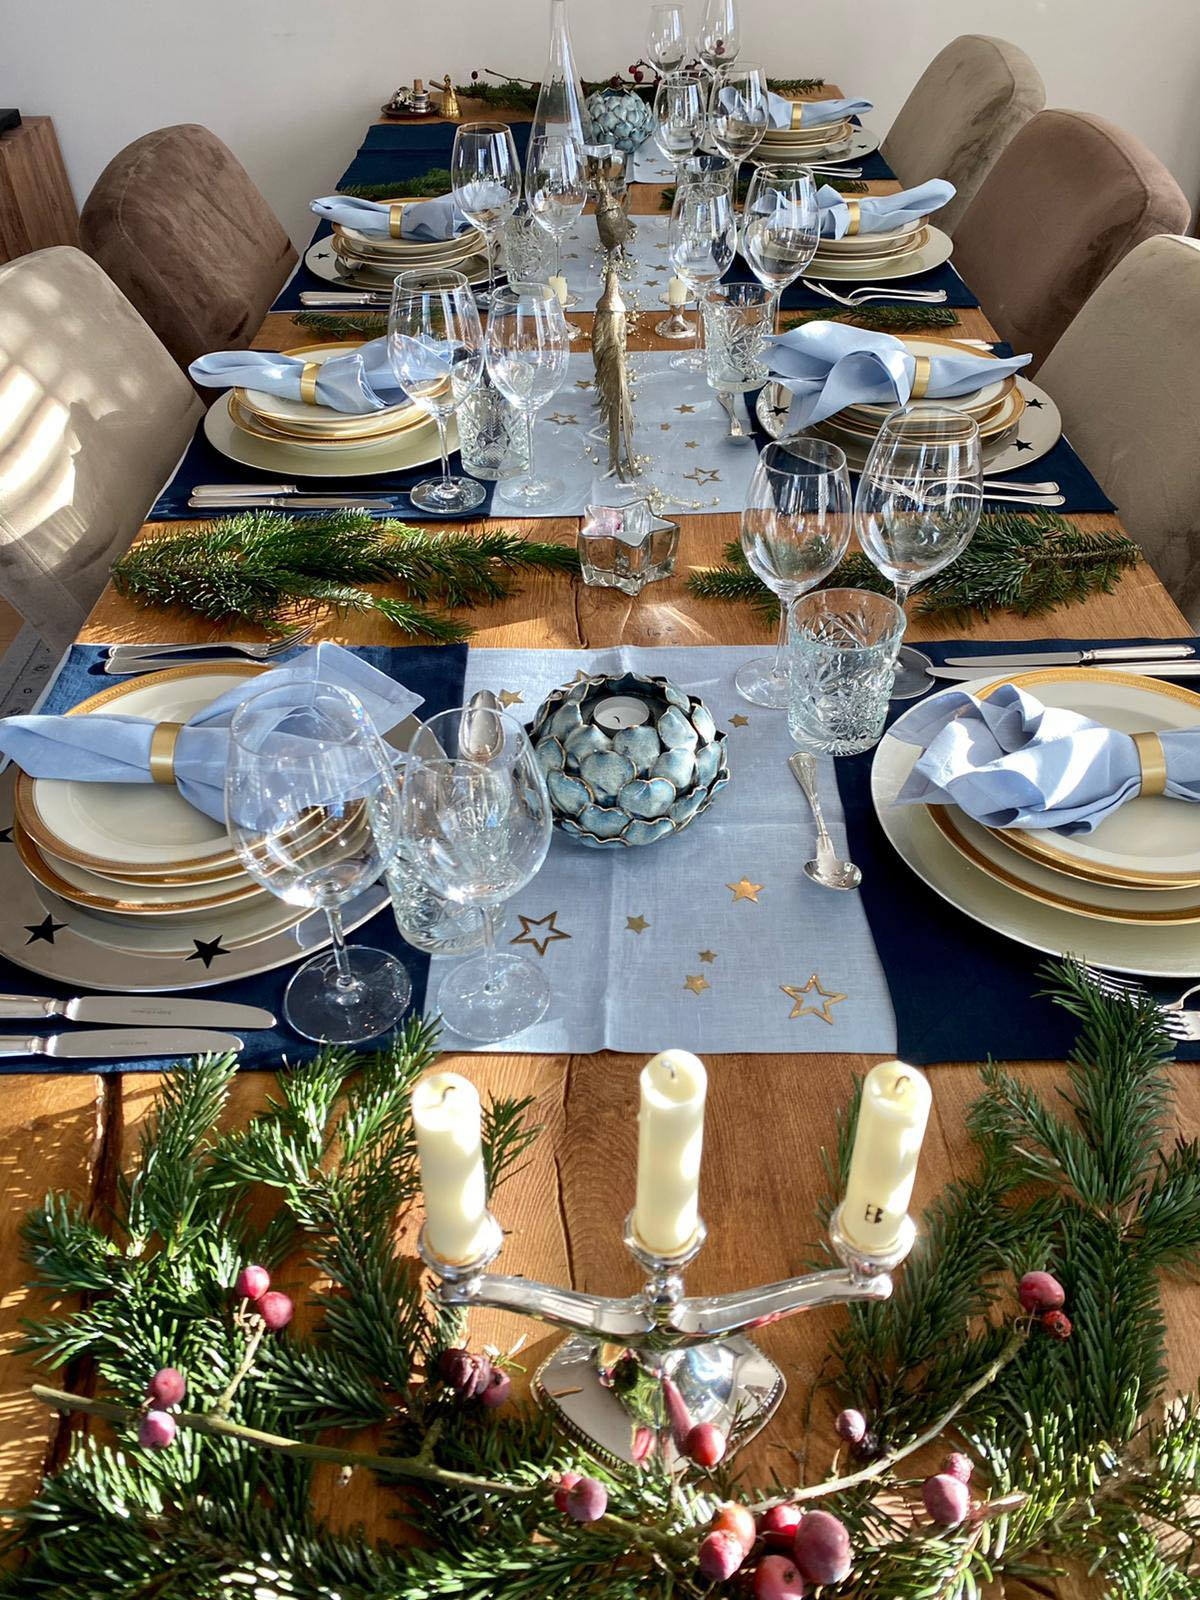 Table runner from soft linen in Dusty blue